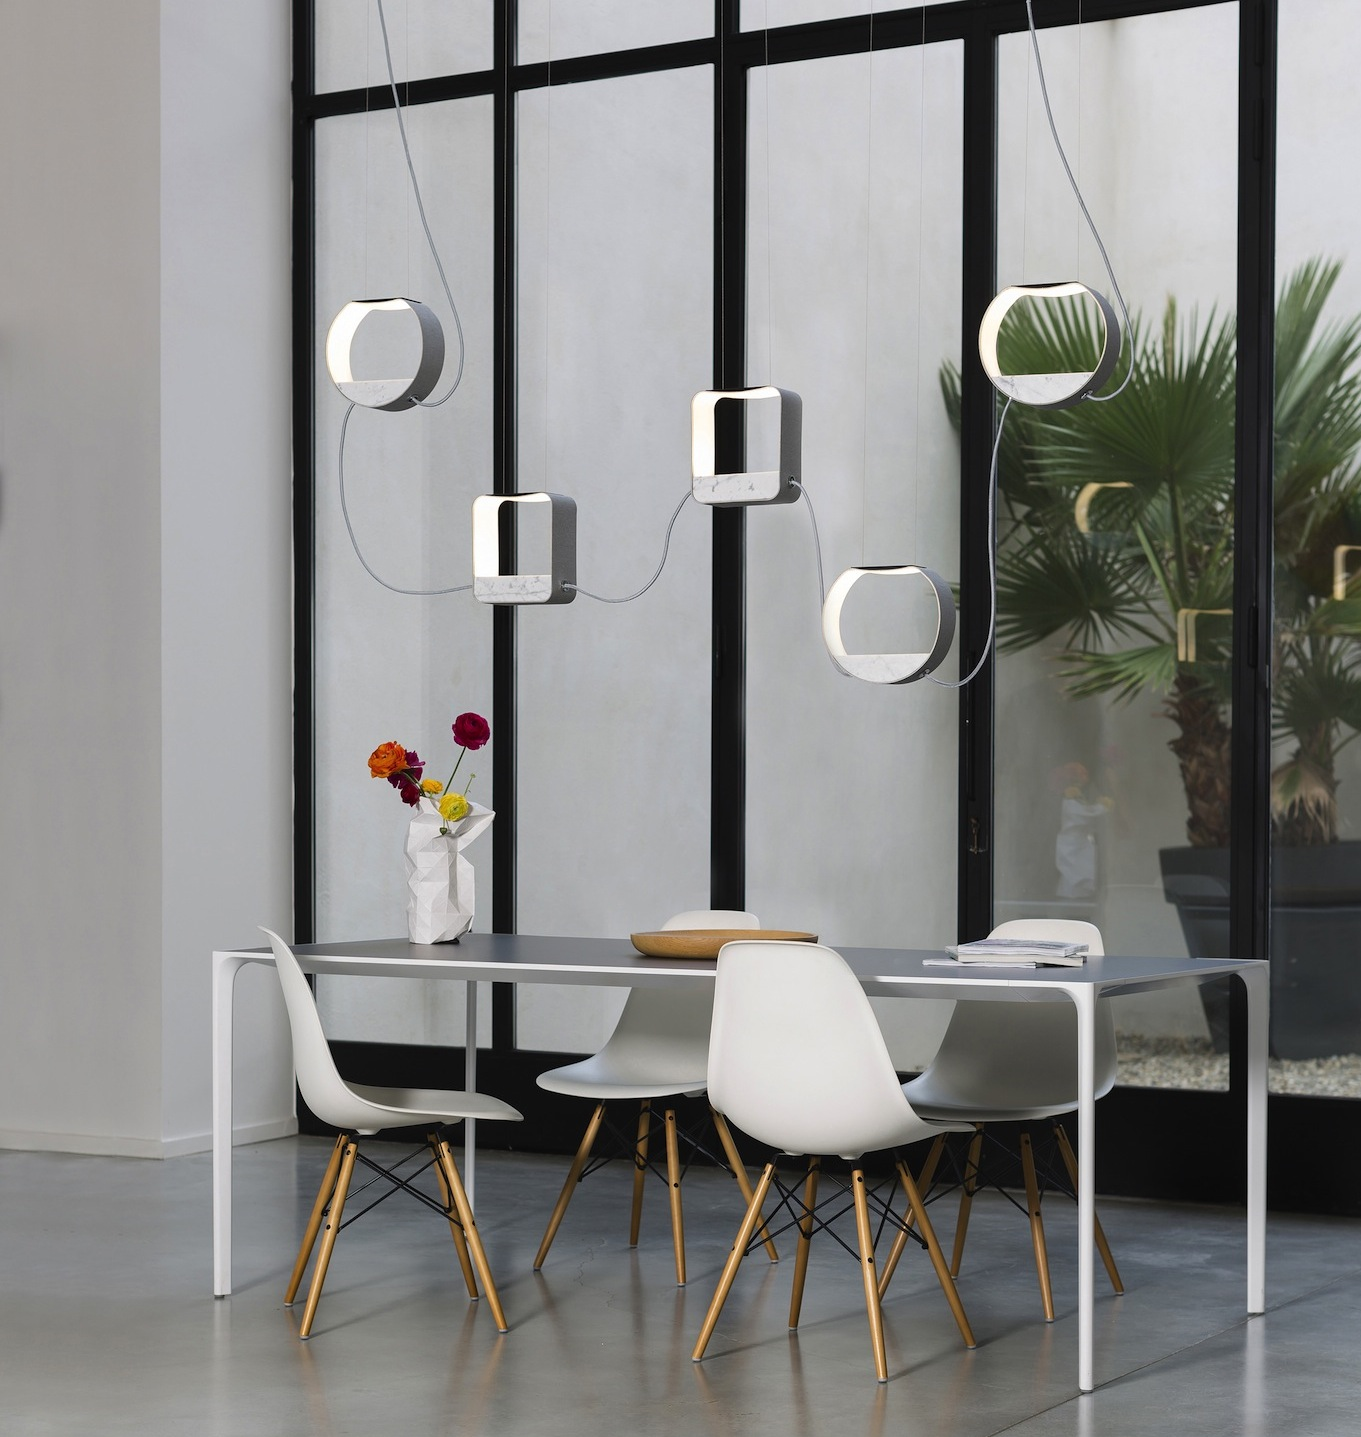 Suspension luminaire g om trique lampe for Lampe suspension salon